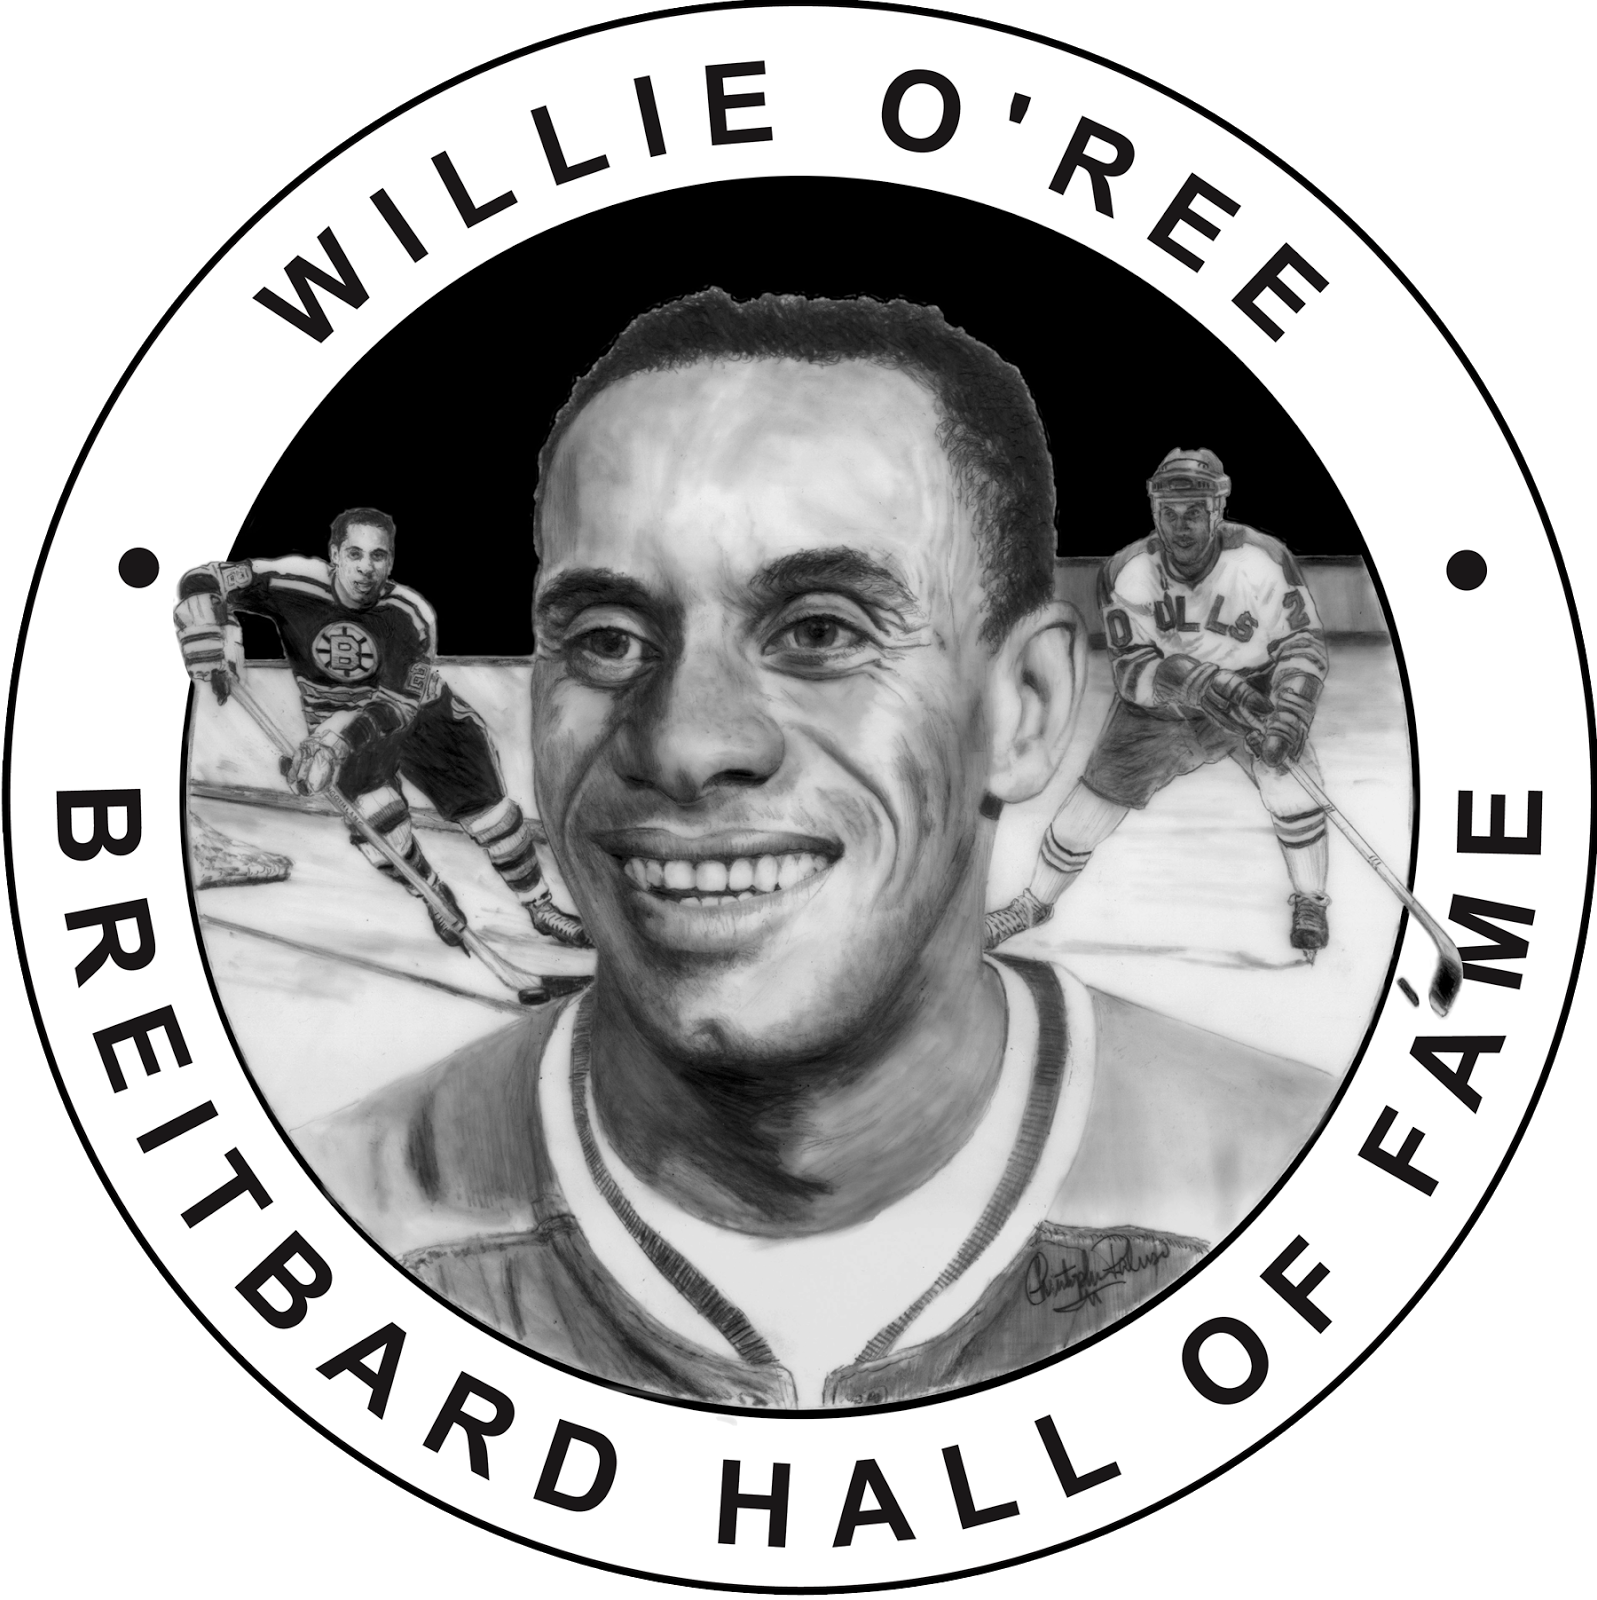 On This Day In Sports: January 18, 1958: Willie O'Ree ...